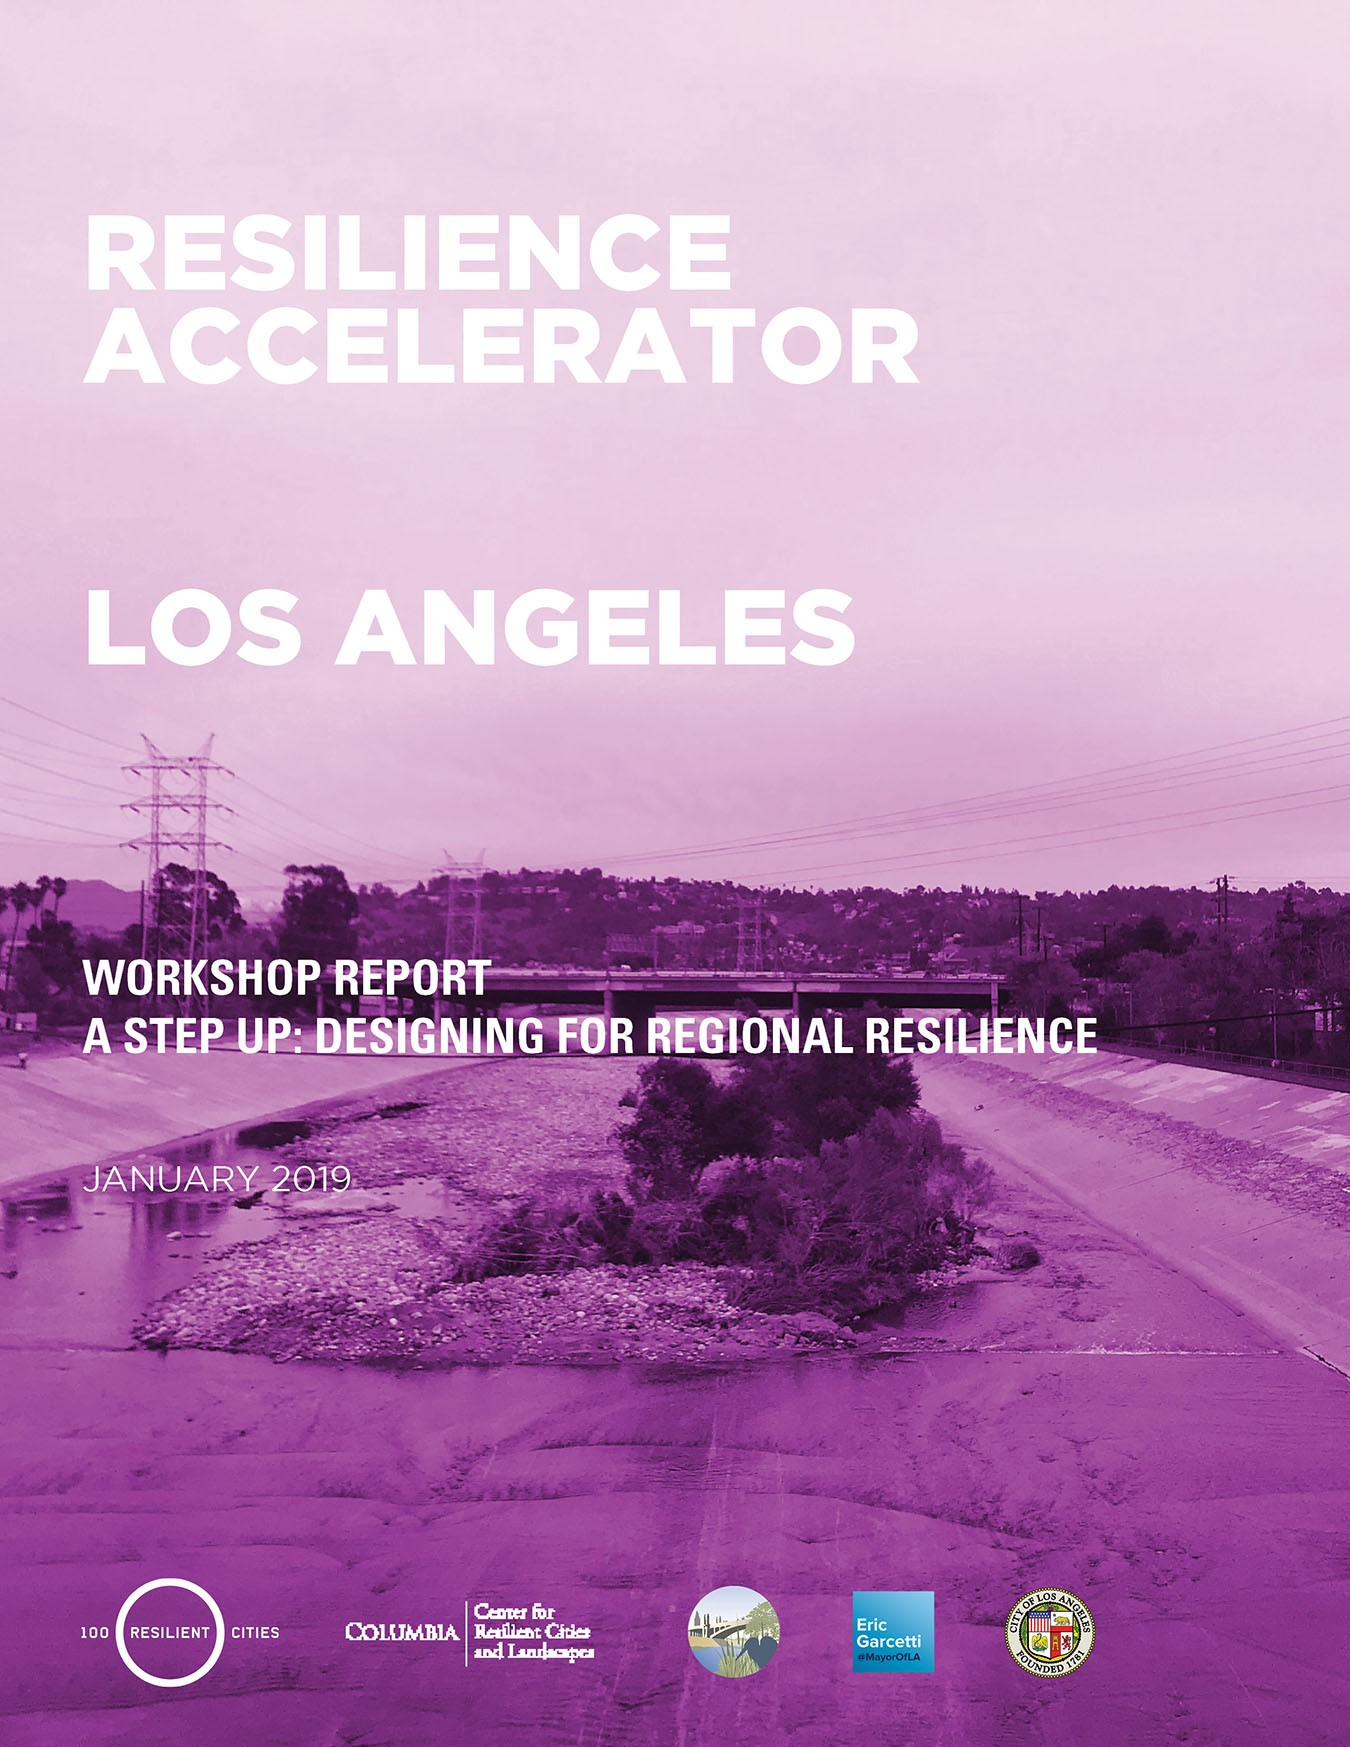 Los Angeles Resilience Accelerator